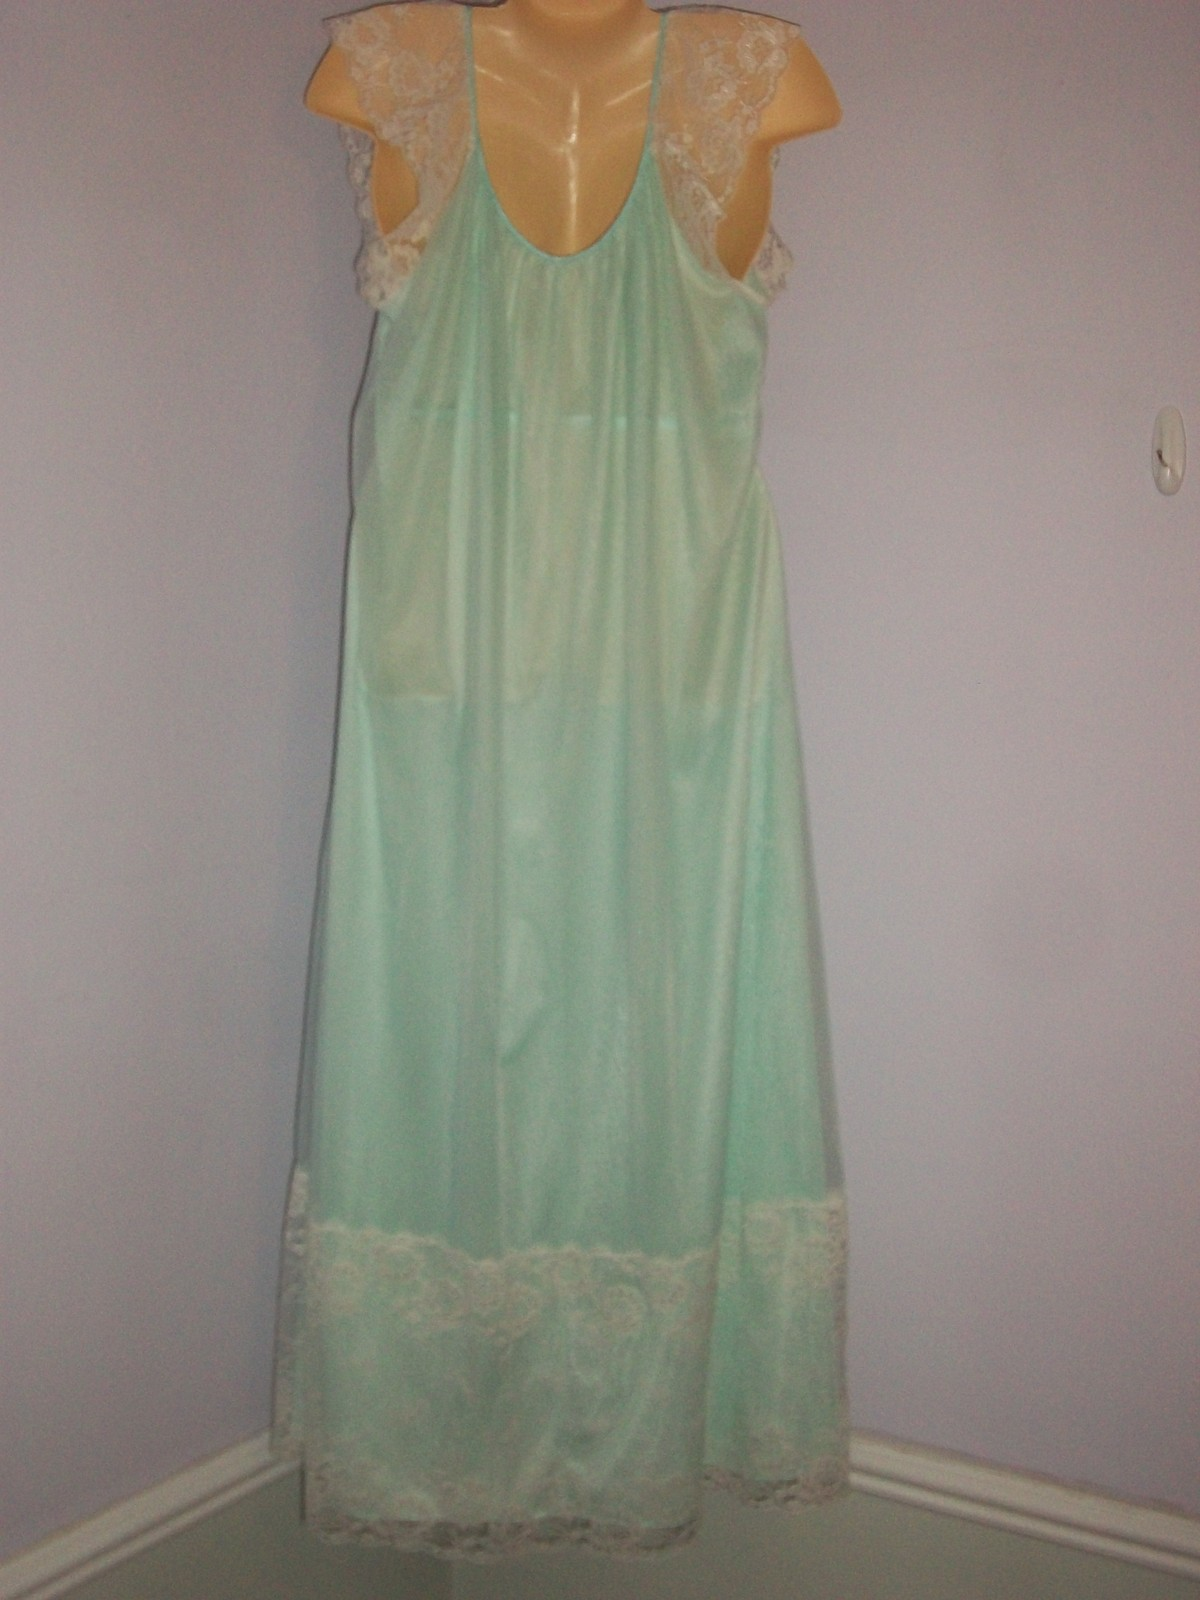 f2aa9c850deb **VINTAGE JENELLE of CALIFORNIA Double Layer Chiffon Nylon and Lace  Nightgown